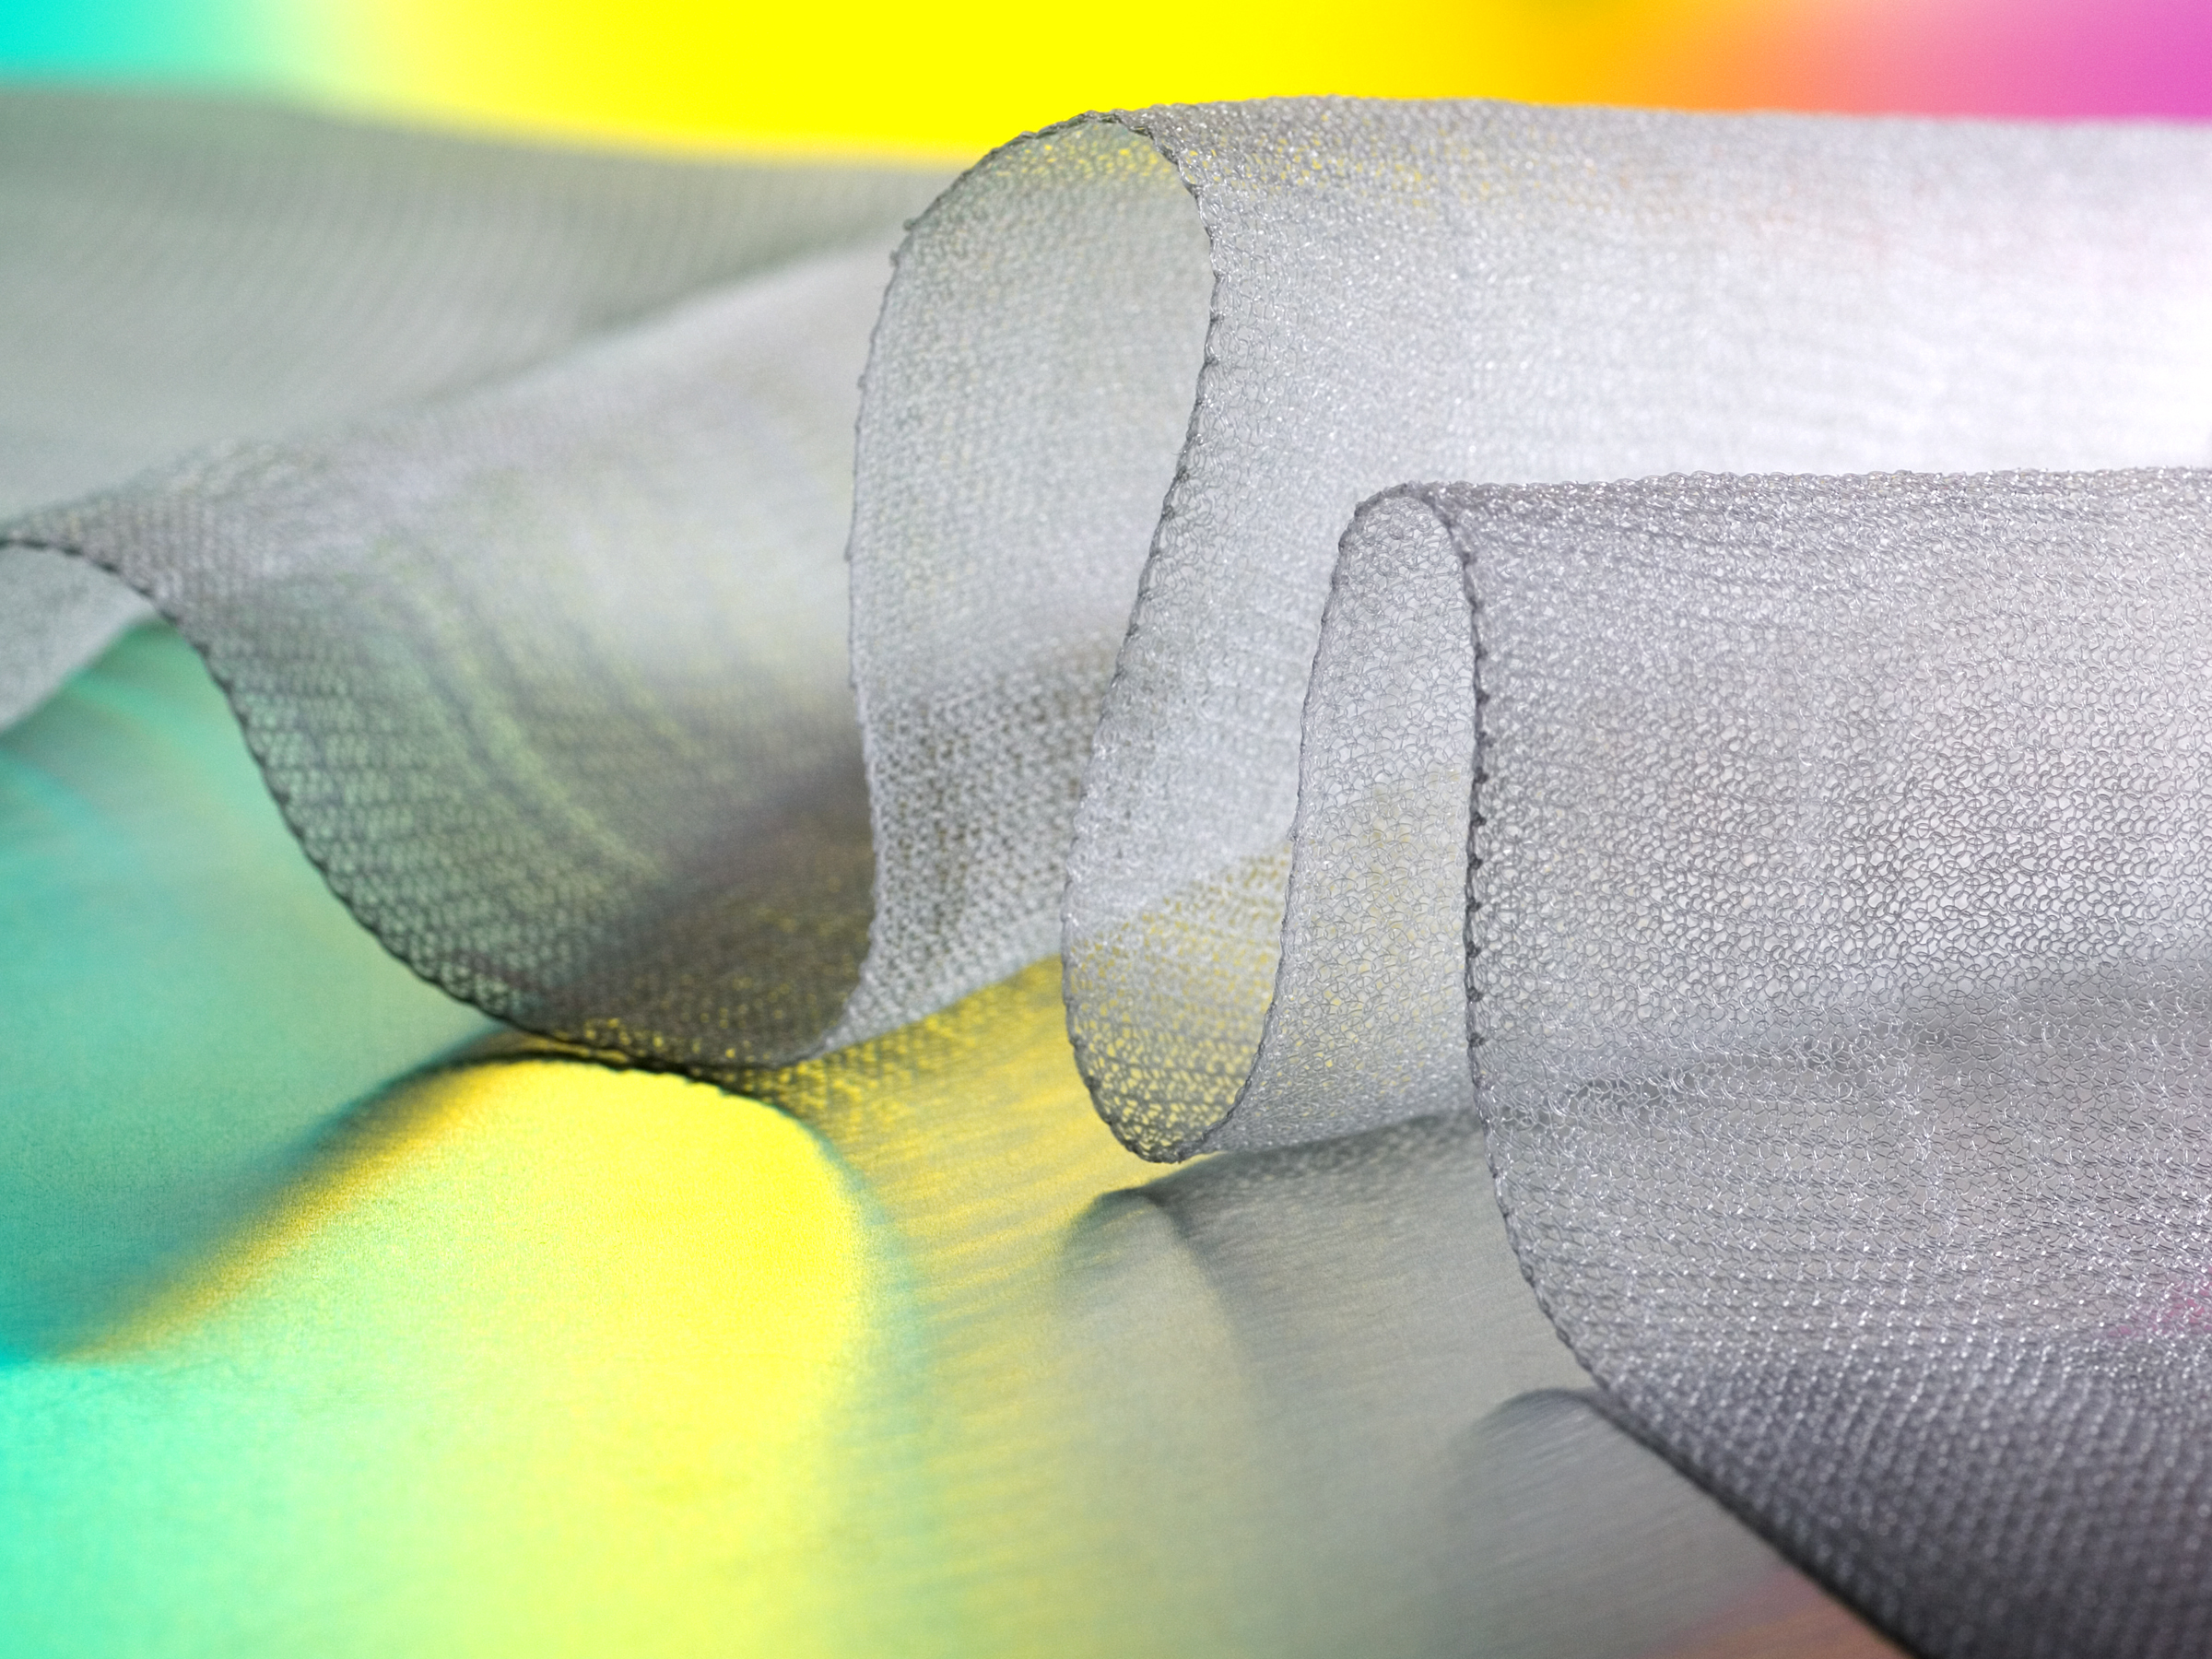 TephaFLEX Surgical Mesh made from knitted filaments of TephaFLEX absorbable biopolymer.